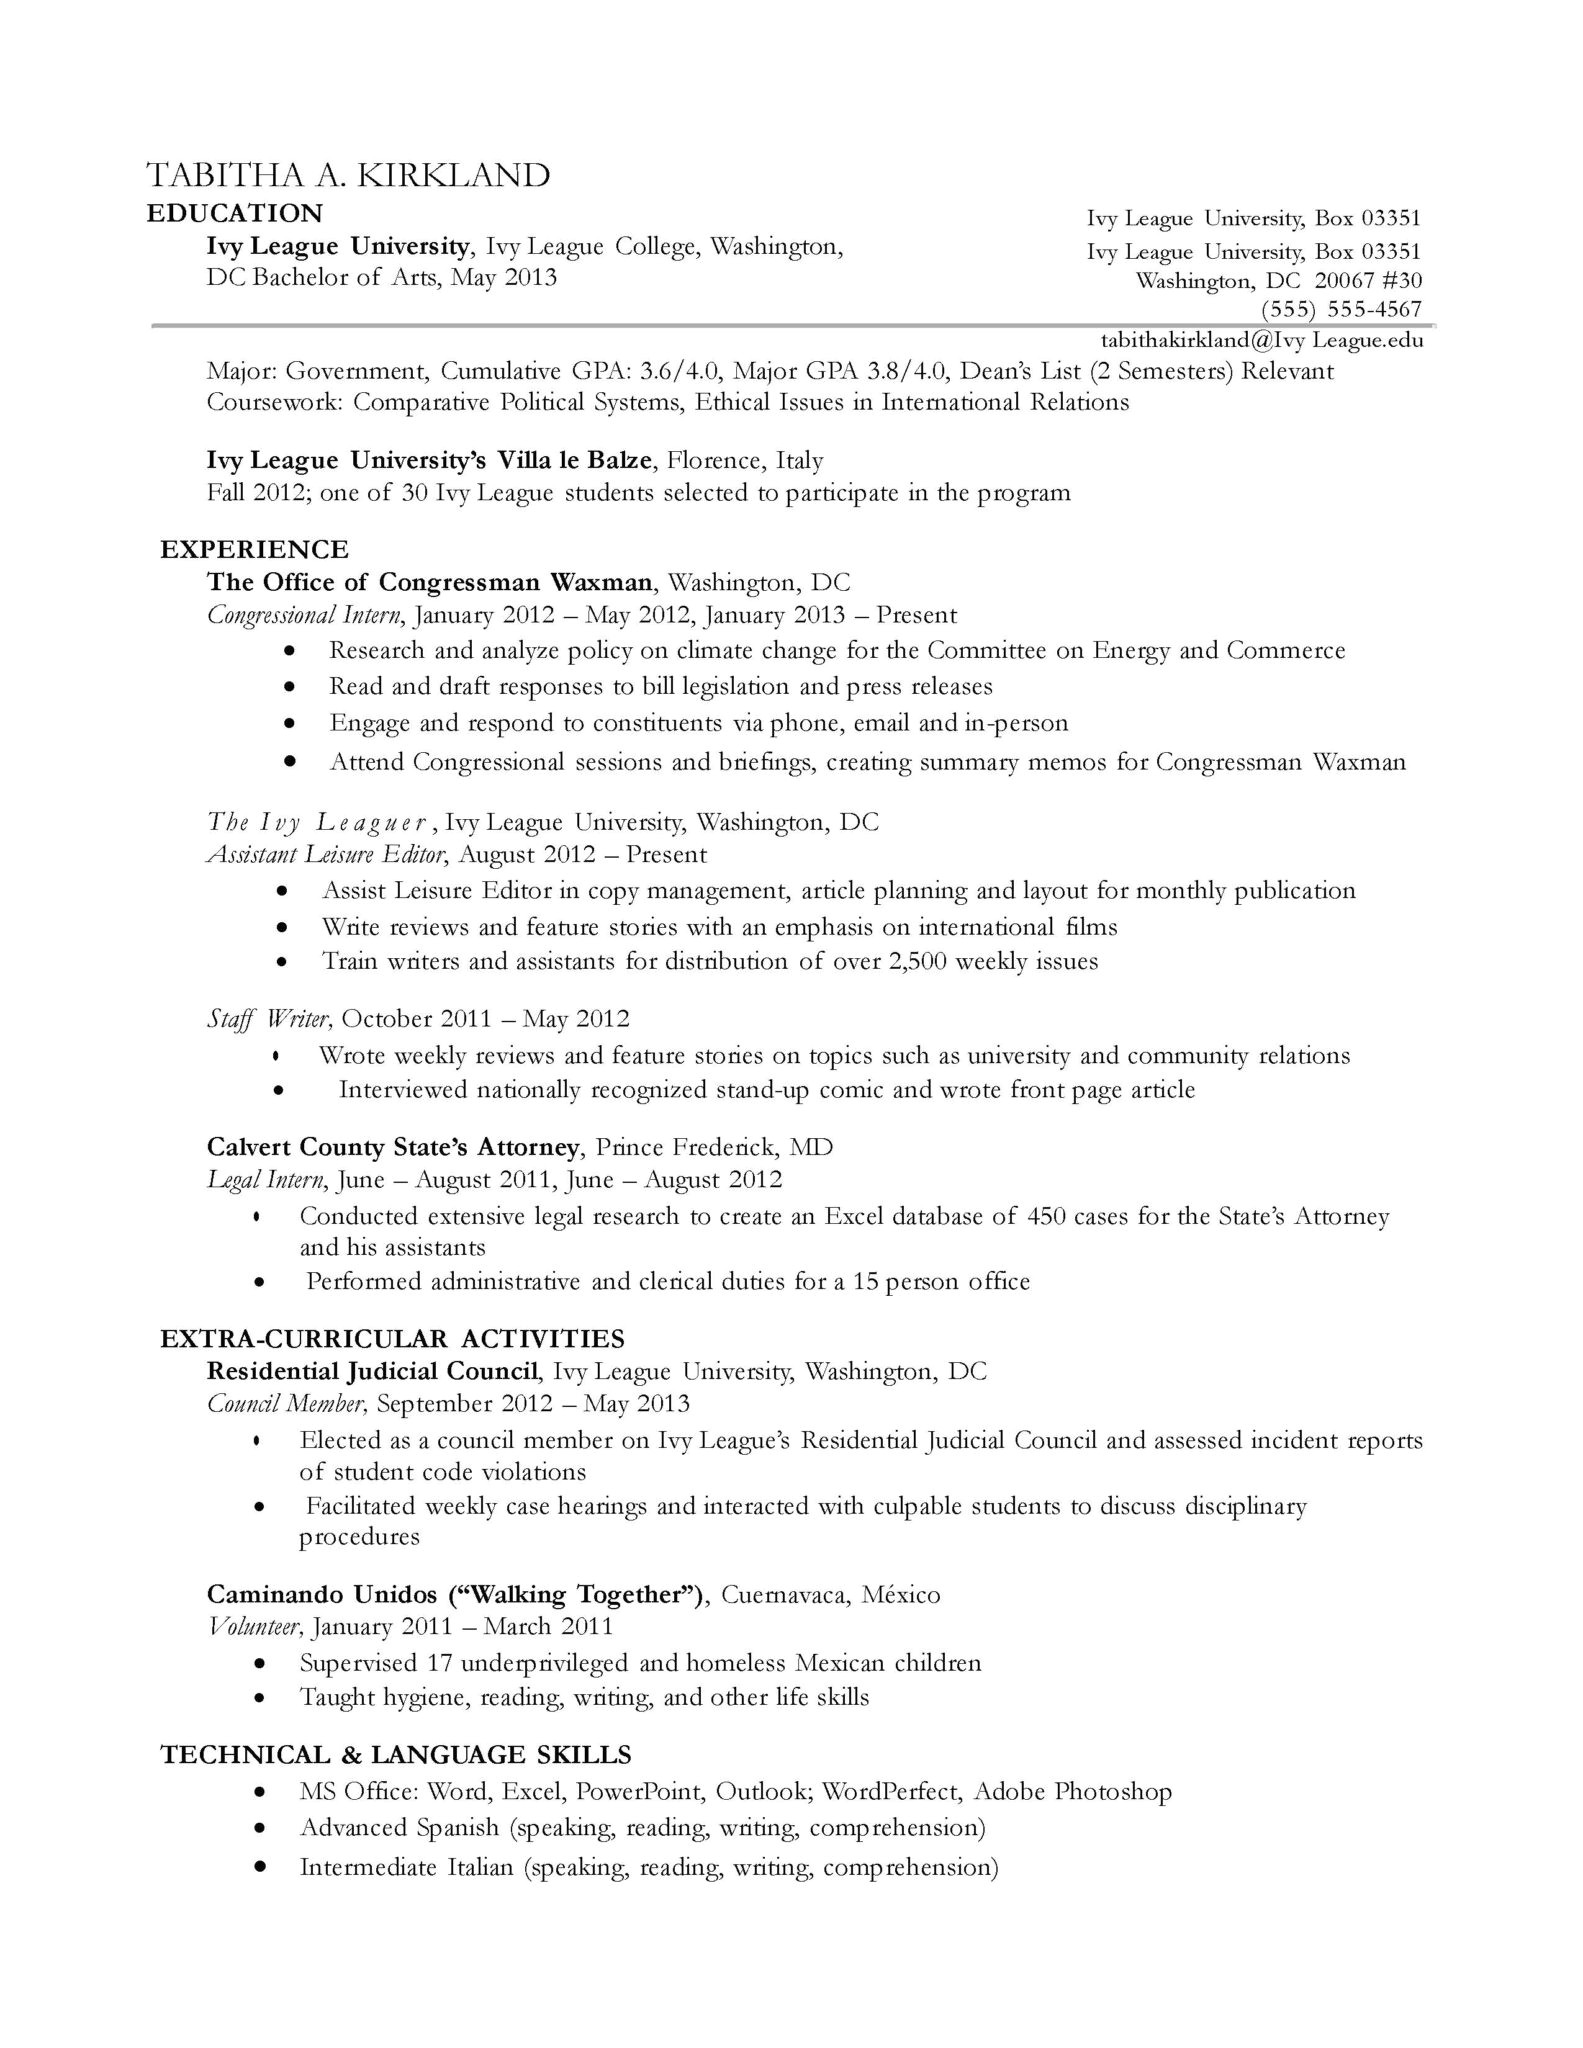 Sample College Application Resume Ivy League Ivy League Student Resume Sidemcicek Com